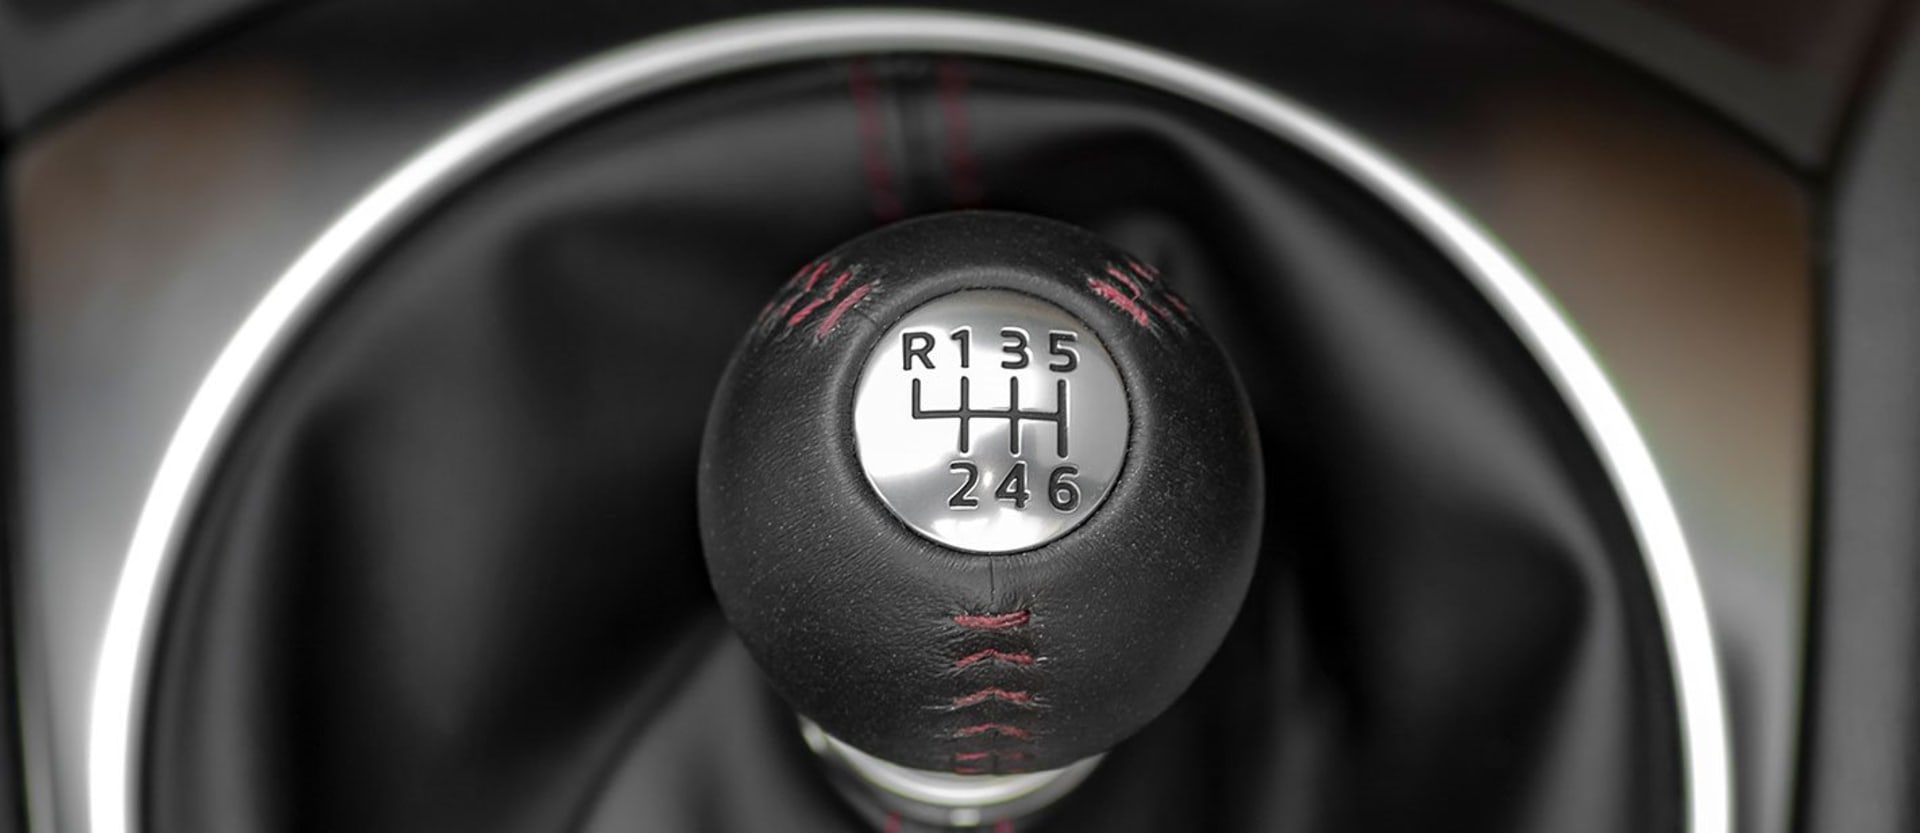 Opinion: Manual gearboxes aren't always better